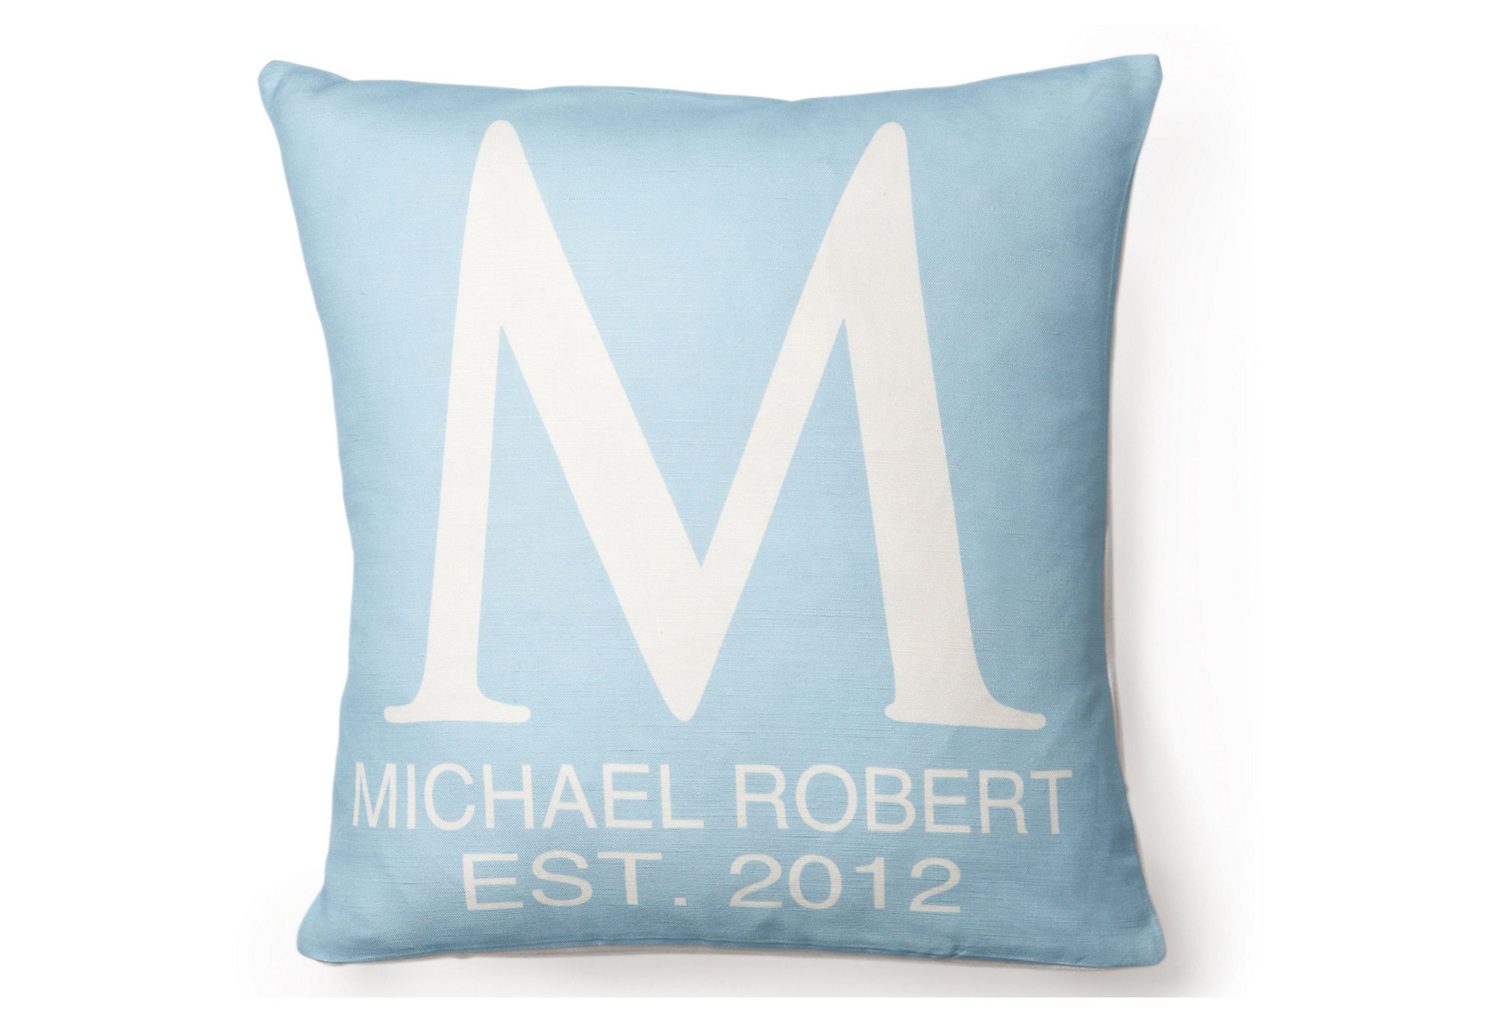 modern monogrammed initial pillows featured at babybox.com